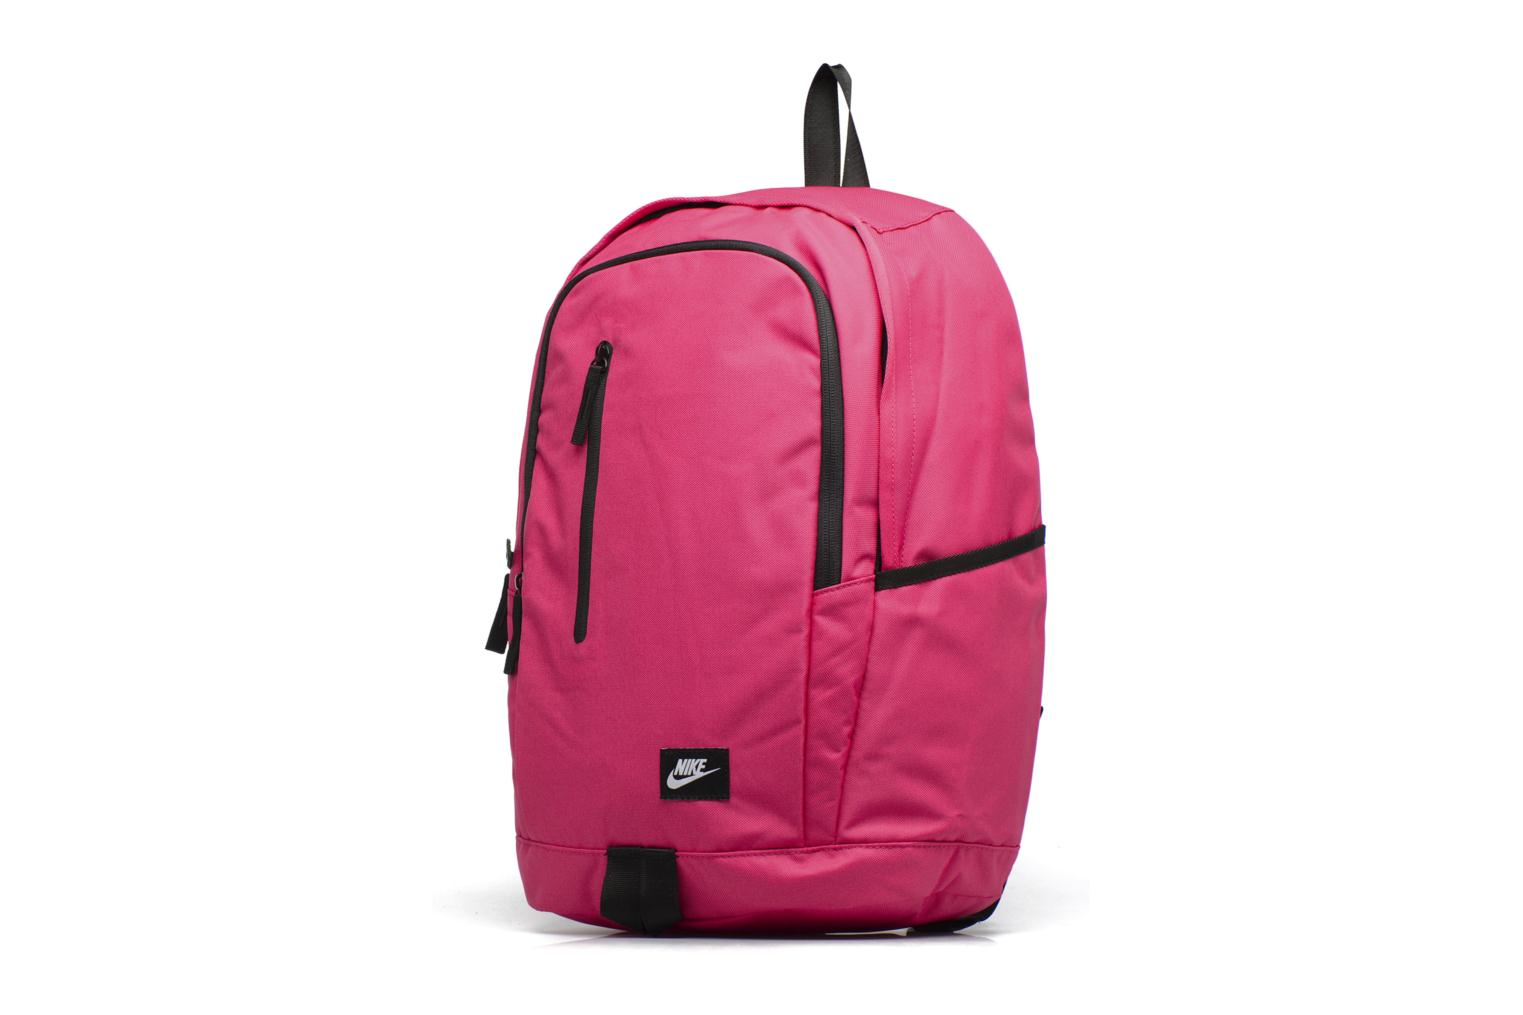 Sacs à dos Nike Nike Soleday Backpack S Rose vue portées chaussures